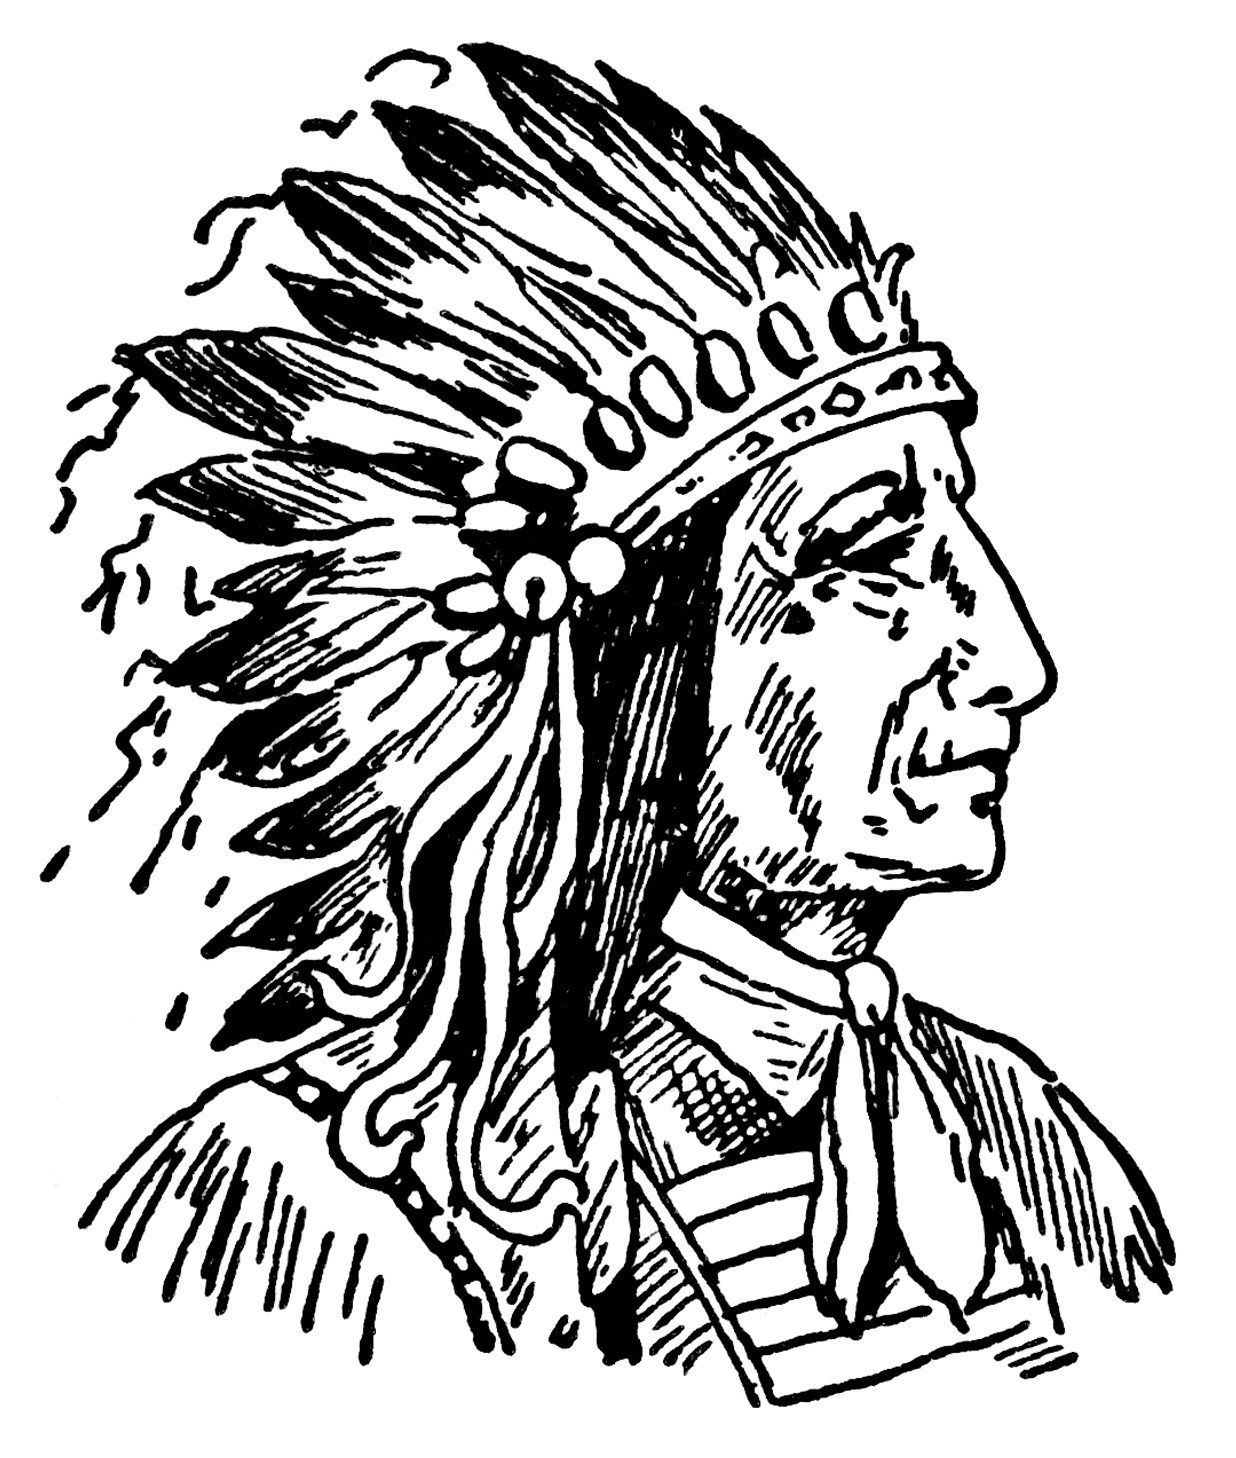 Indian chief clip art, vintage Native American illustration, black.